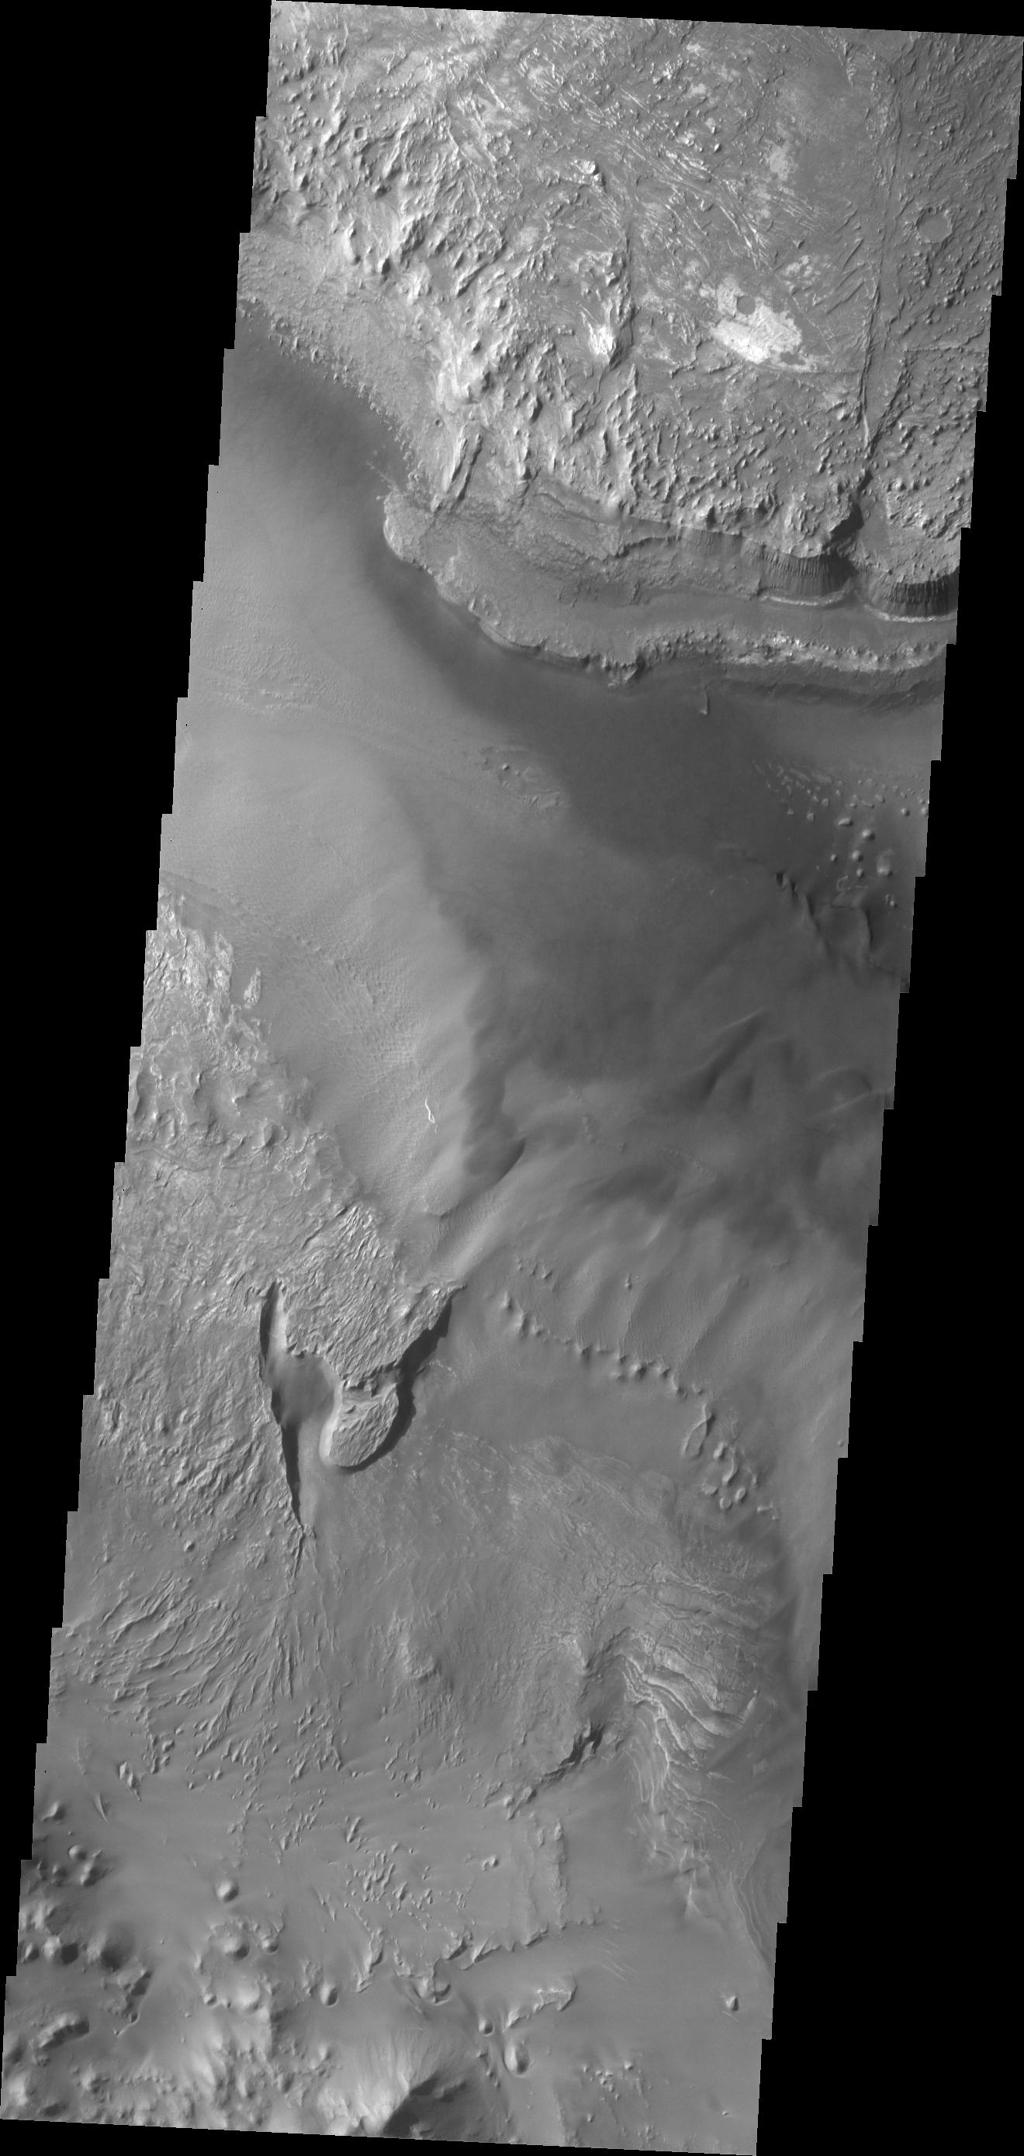 Melas Chasma is the central portion of Valles Marineris. This image taken by NASA's 2001 Mars Odyssey shows a small portion of the floor of Melas Chasma, including layered deposits and wind eroded and deposited materials.